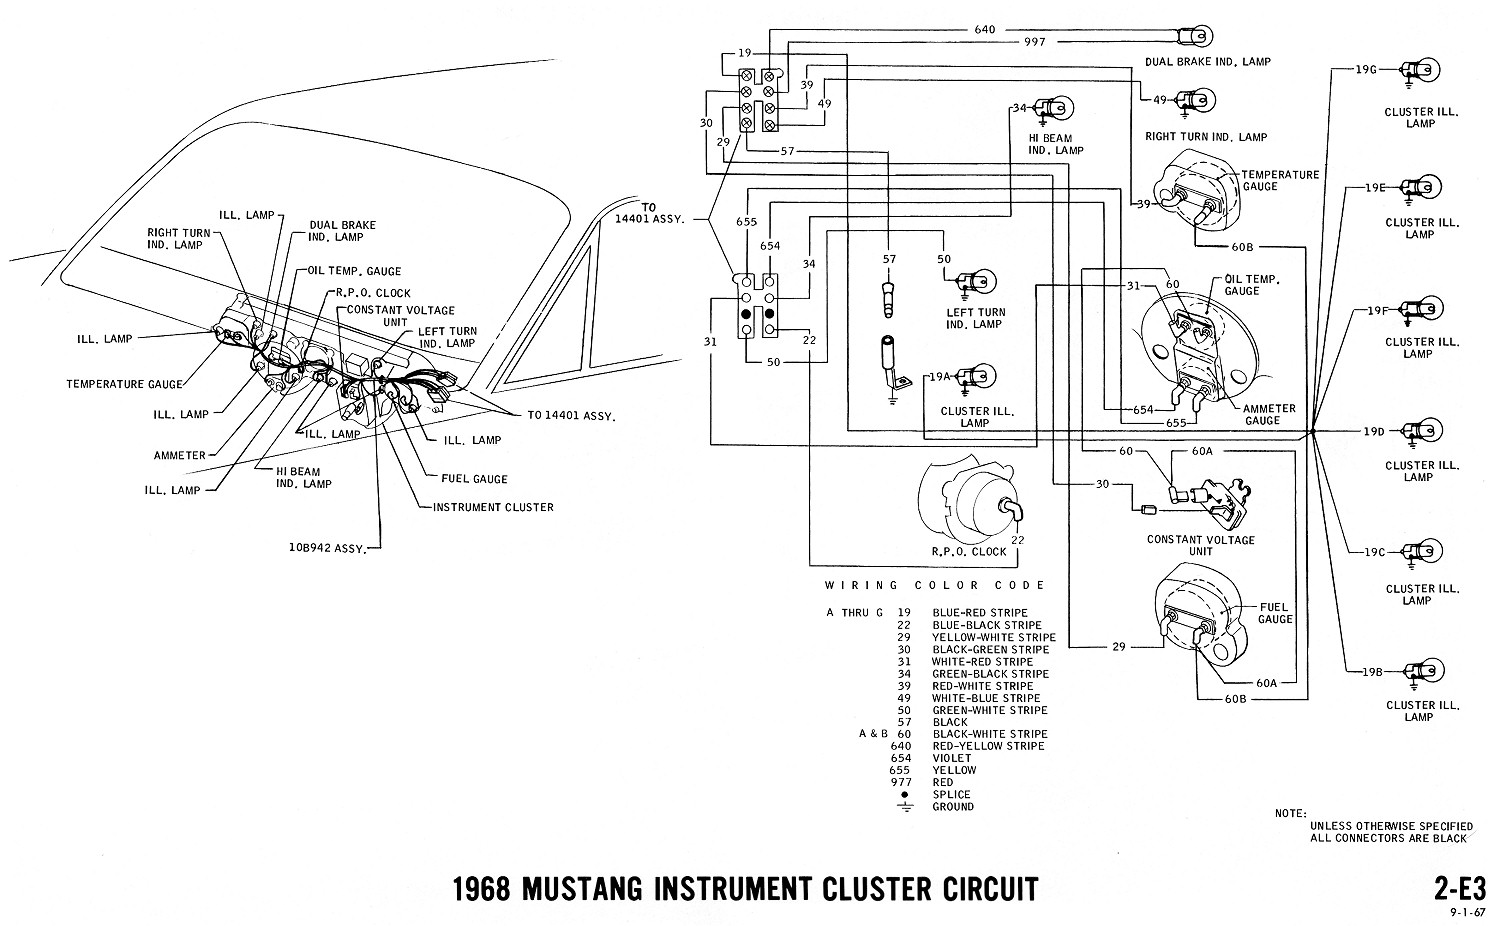 1968 mustang wiring diagram instruments wiring diagram for 1968 ford mustang the wiring diagram 2005 ford mustang instrument cluster wiring diagram at readyjetset.co